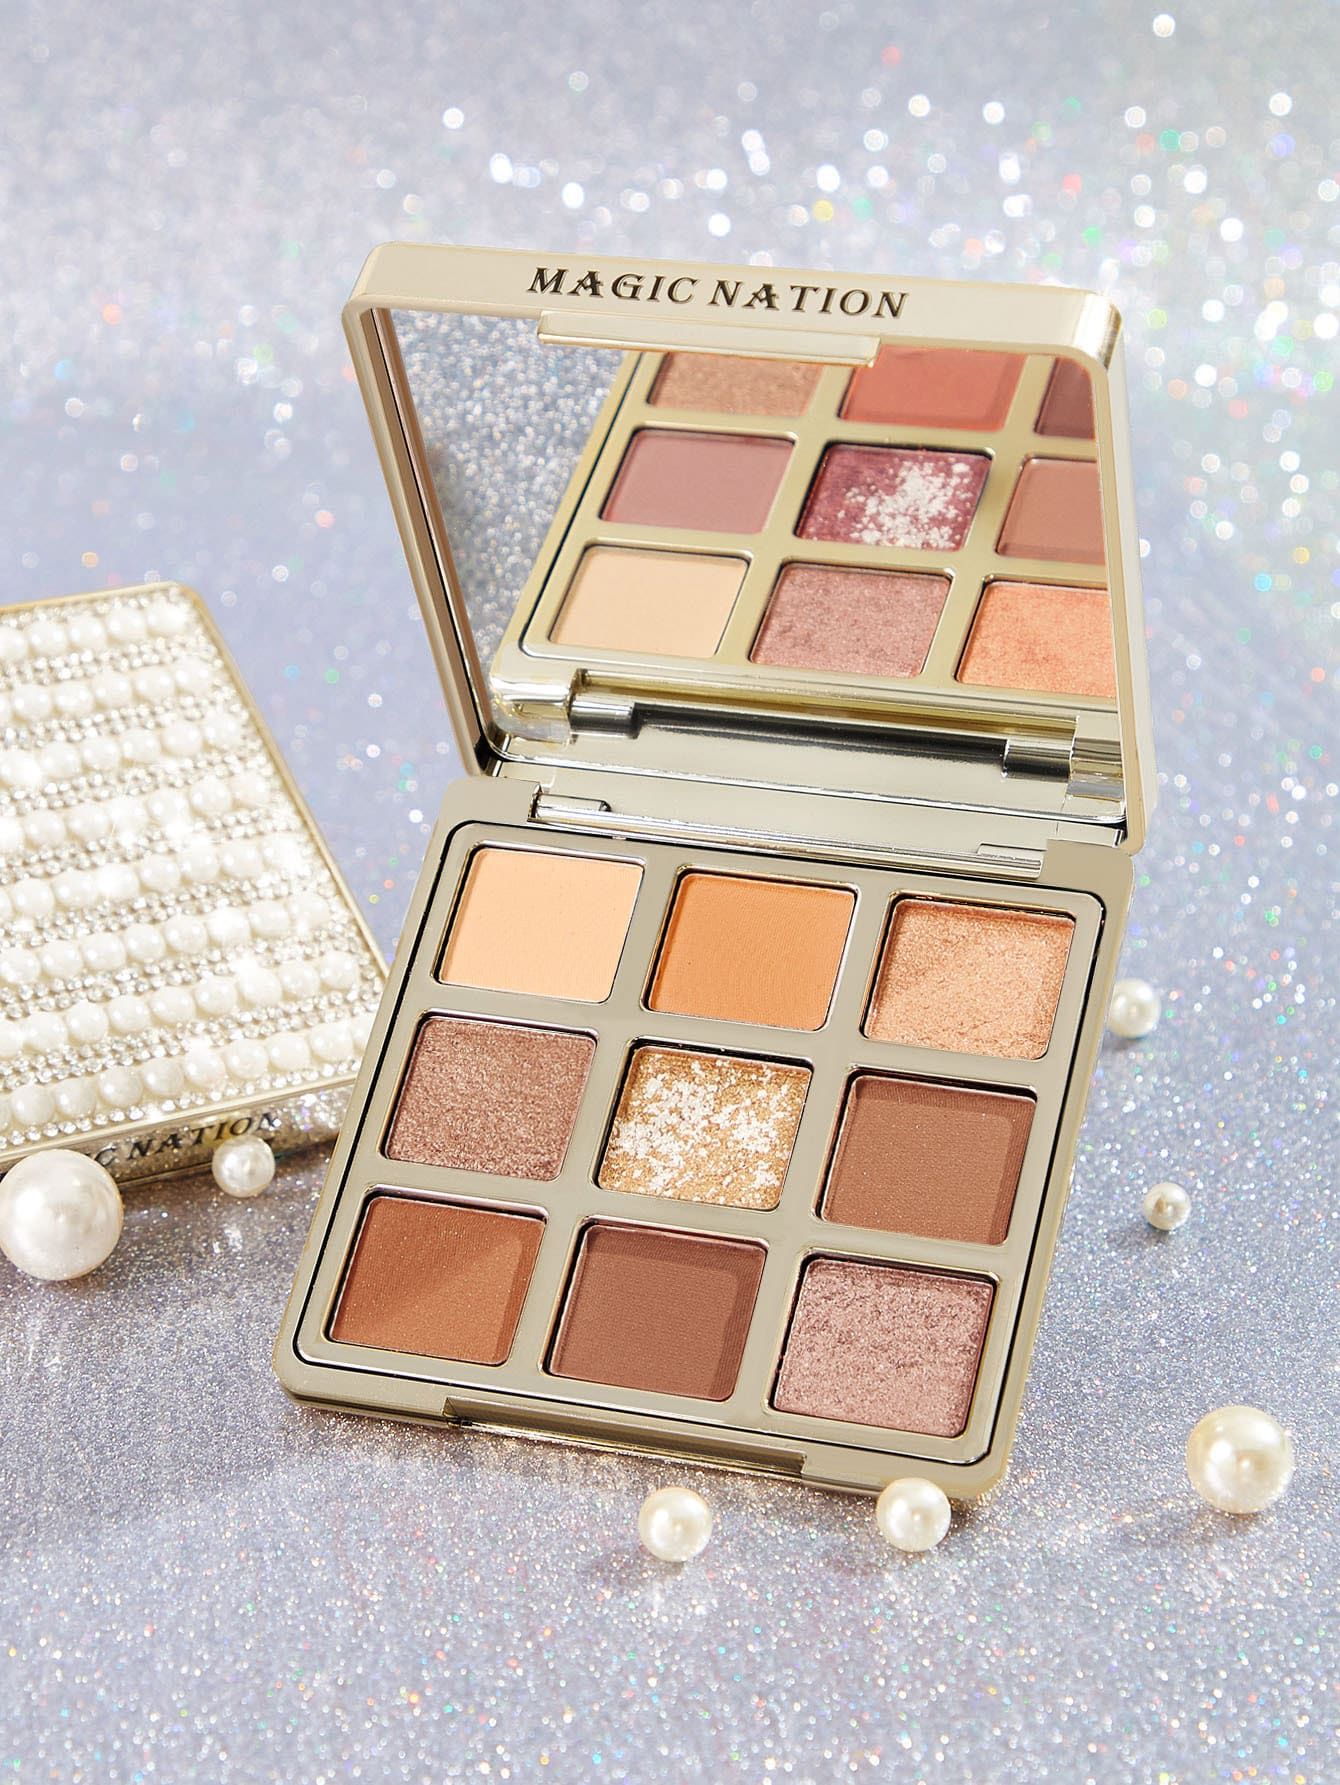 Star Shine 9 Color Eyeshadow Palette